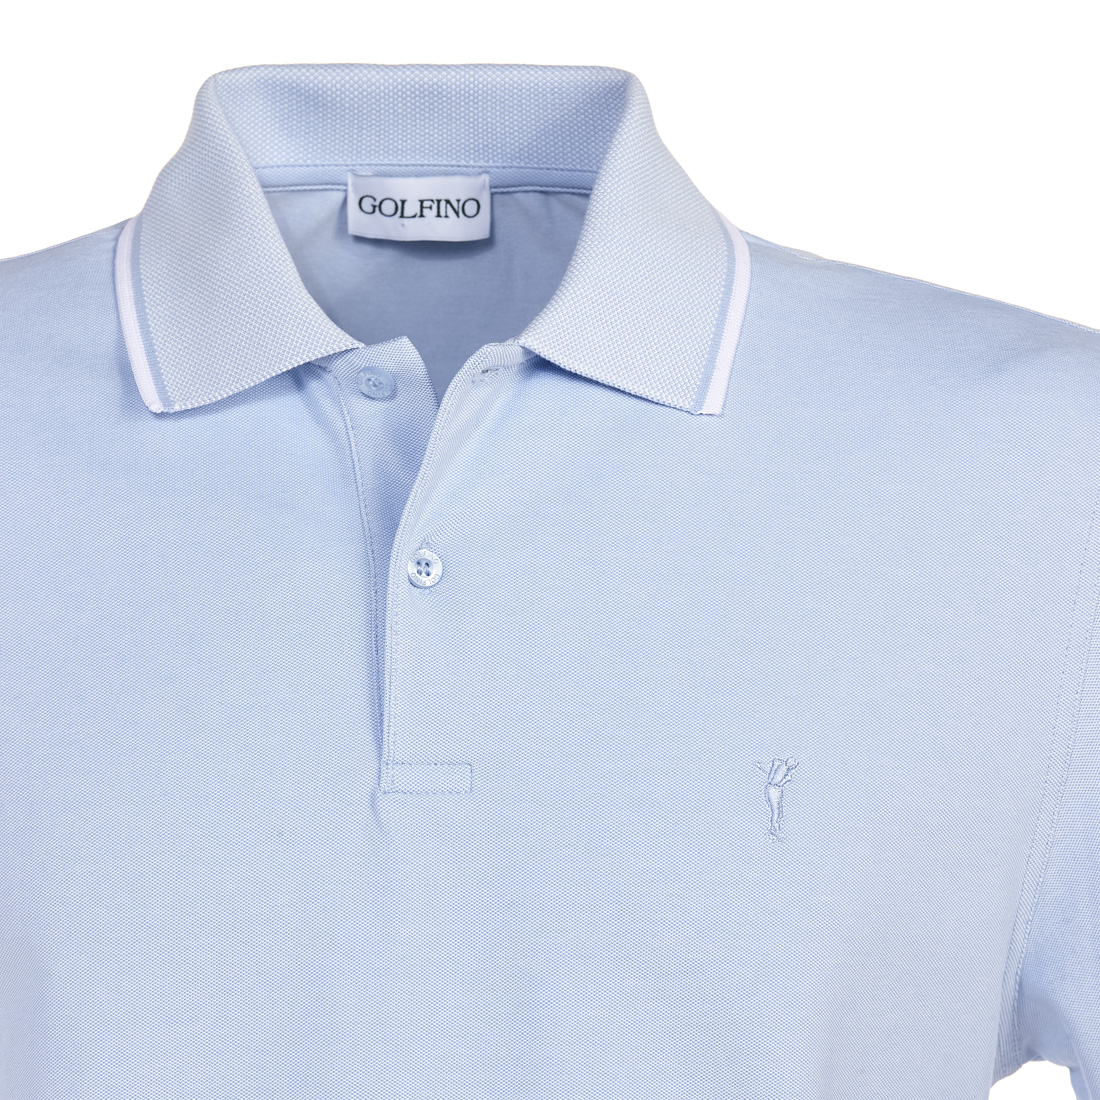 Funktions-Golfpolo Chambray mit Sun Protection